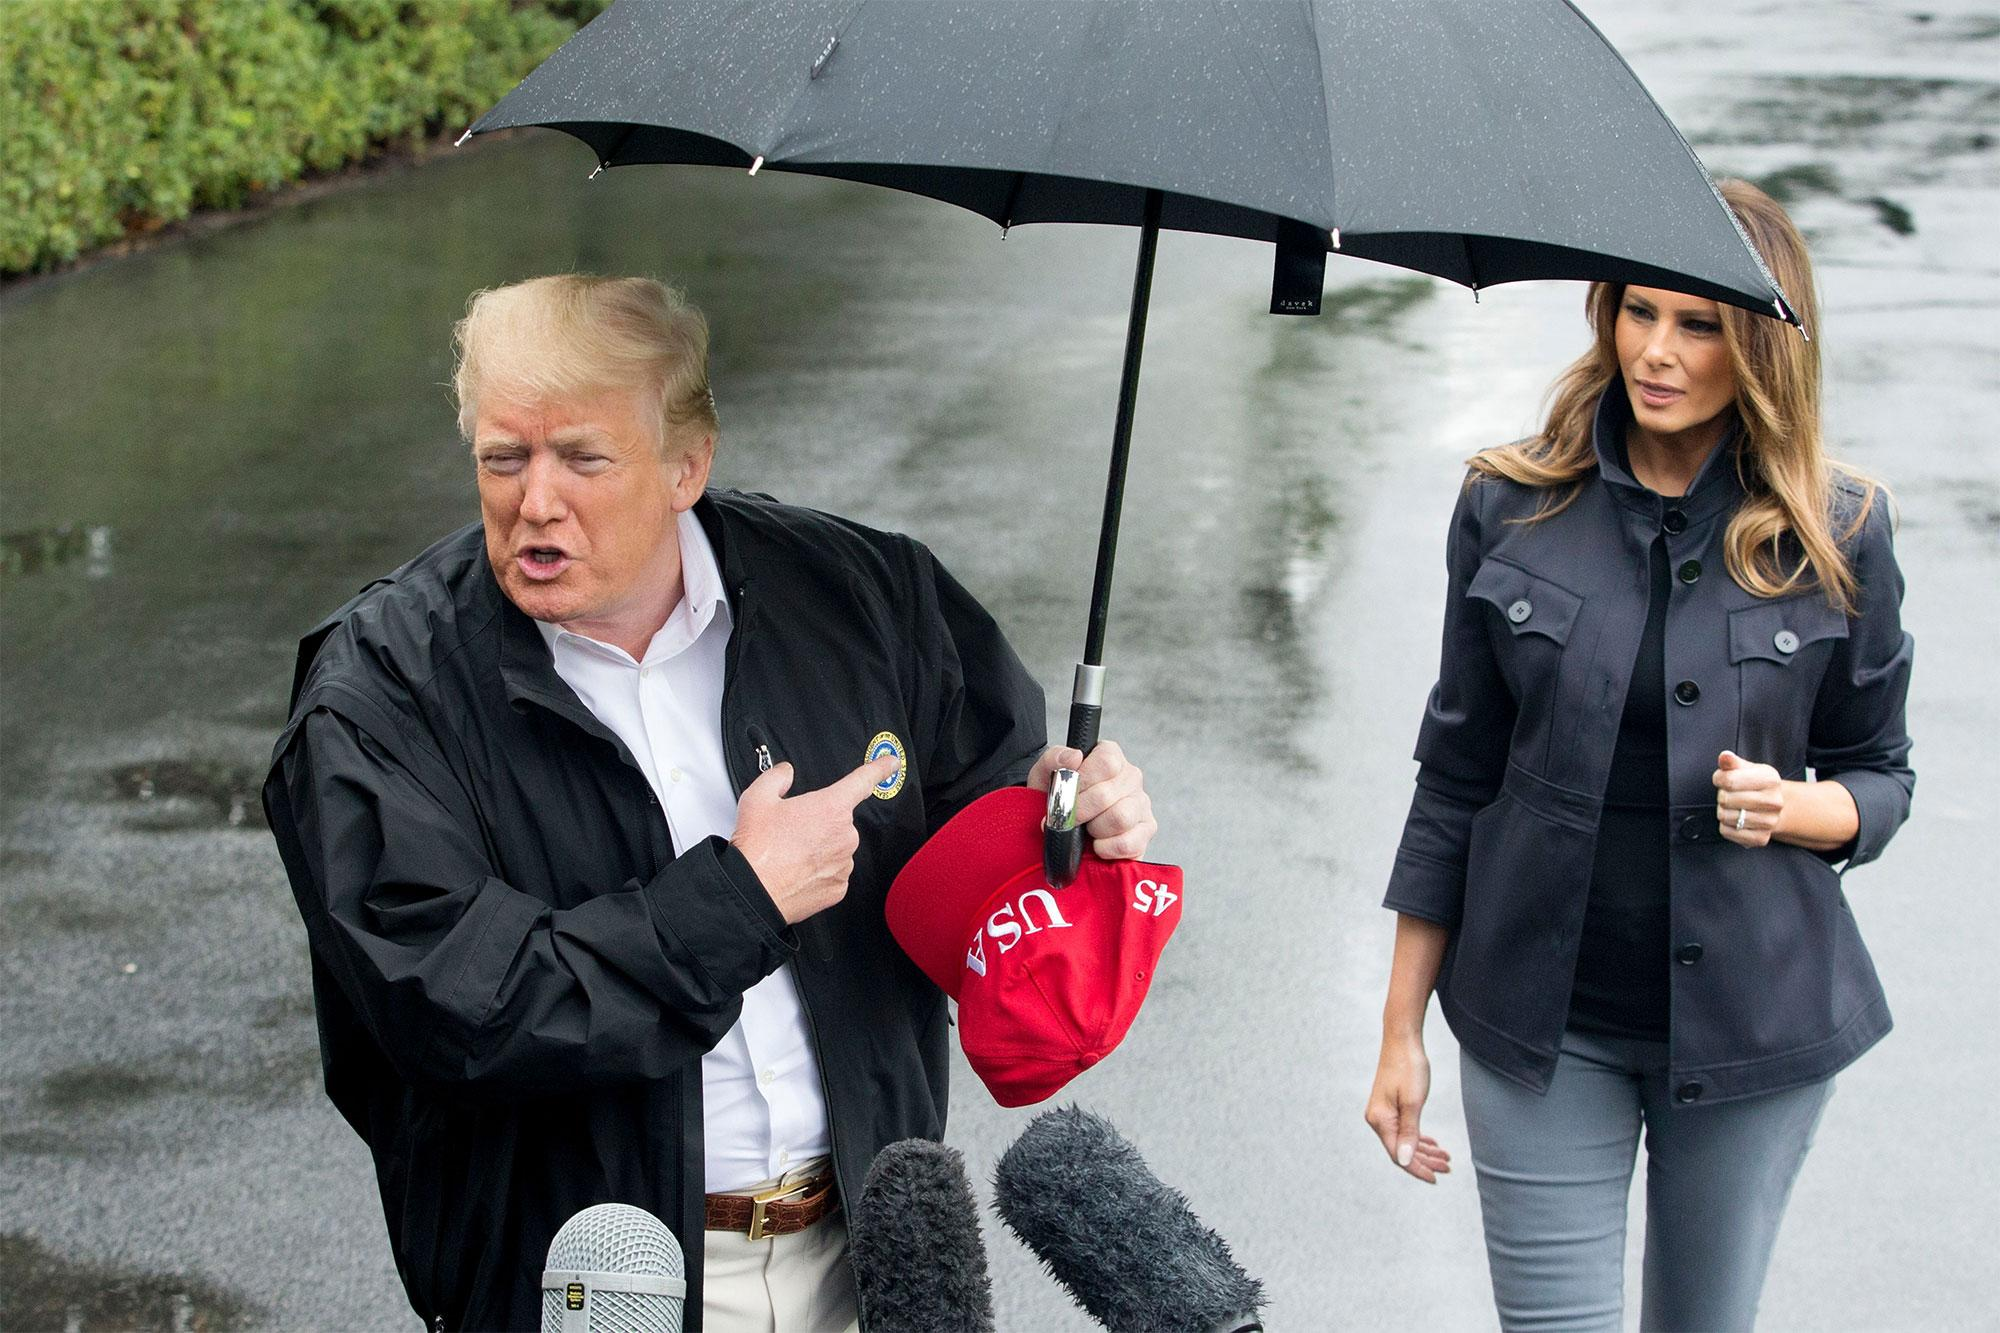 Donald Trump Leaves Wife Melania Out in the Rain While He Uses an Umbrella — See the Photos